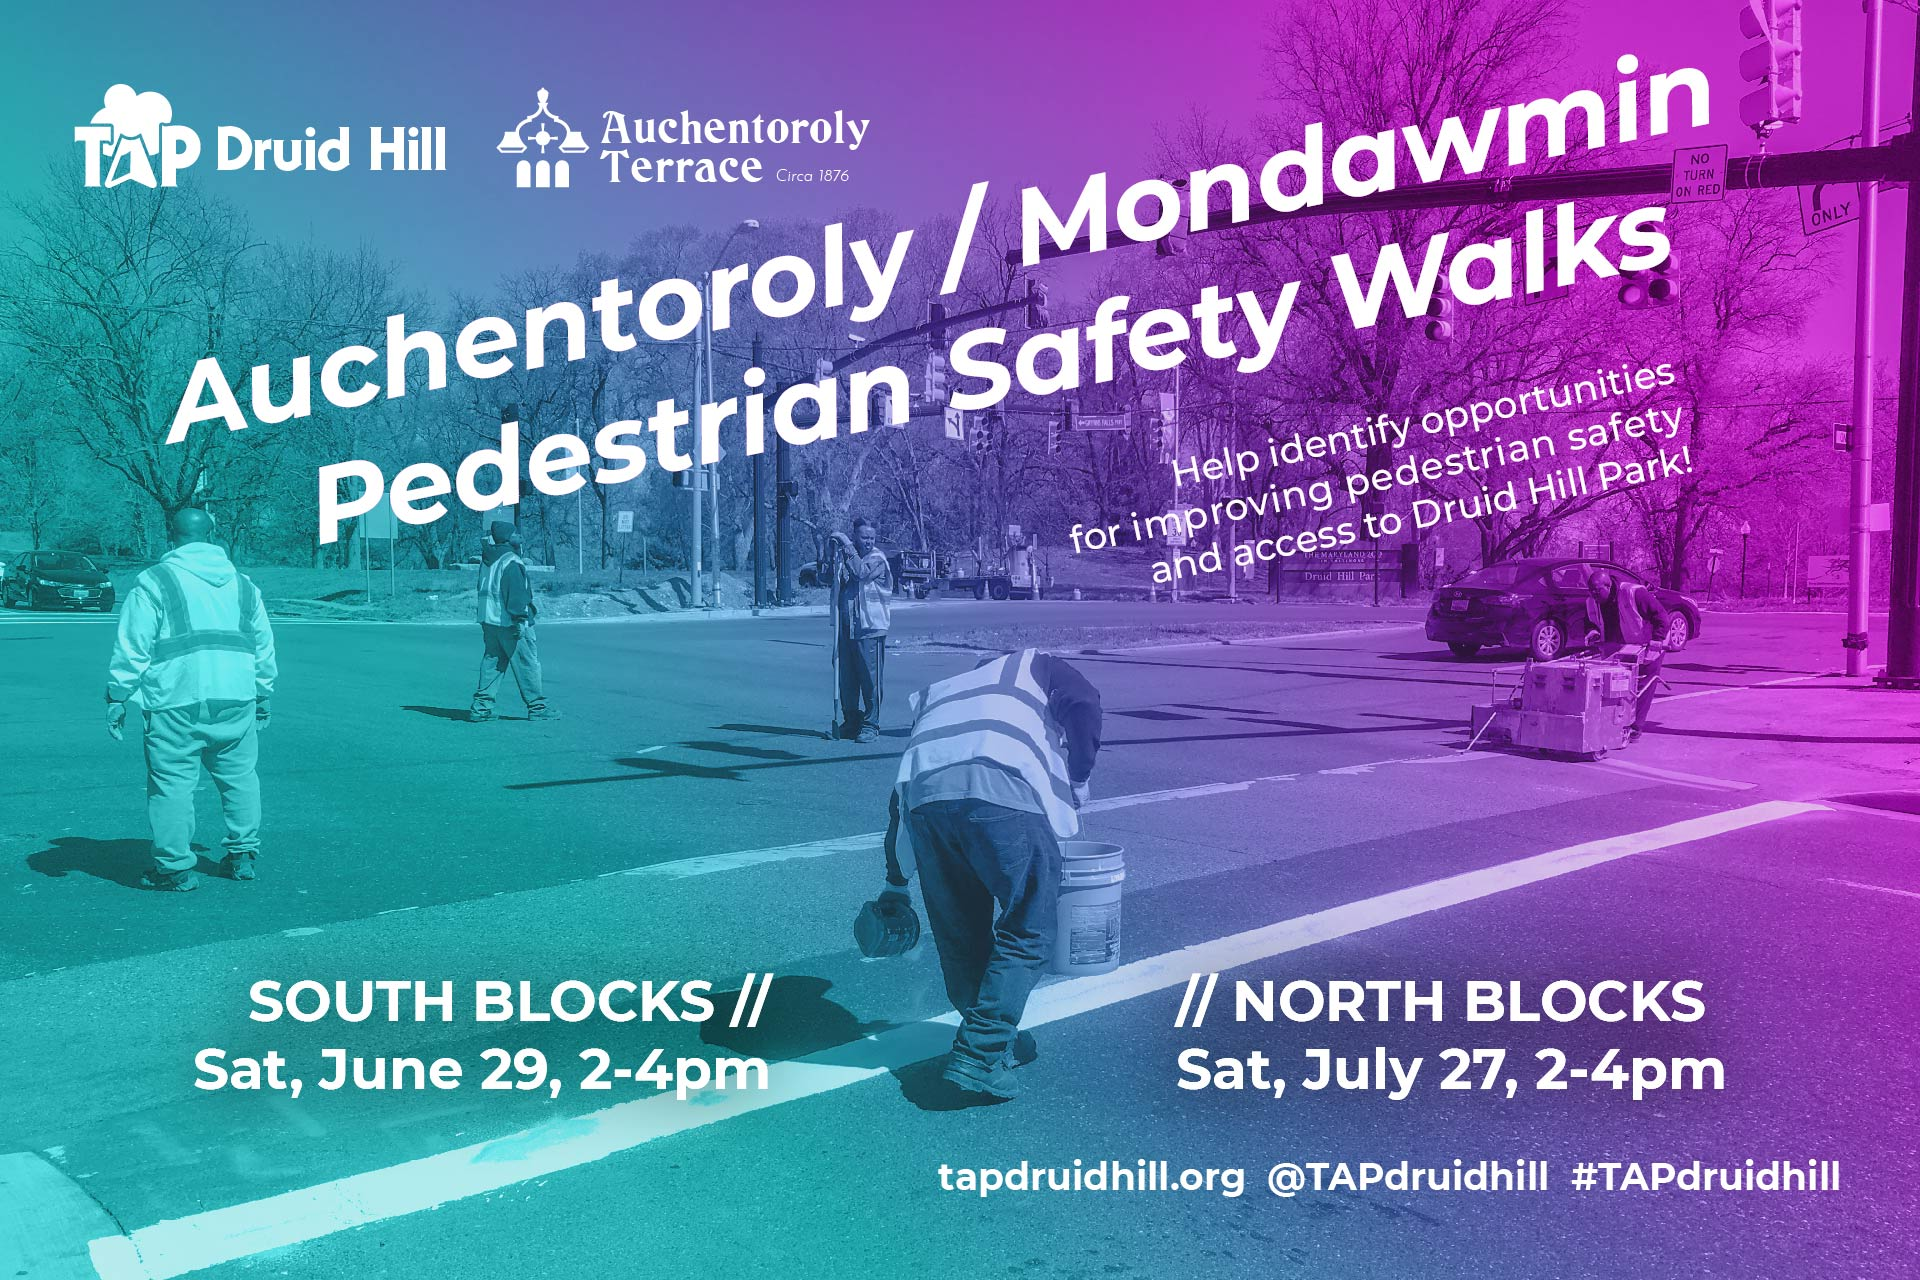 TAP Druid Hill Auchentoroly Mondawmin Pedestrian Safety Walks